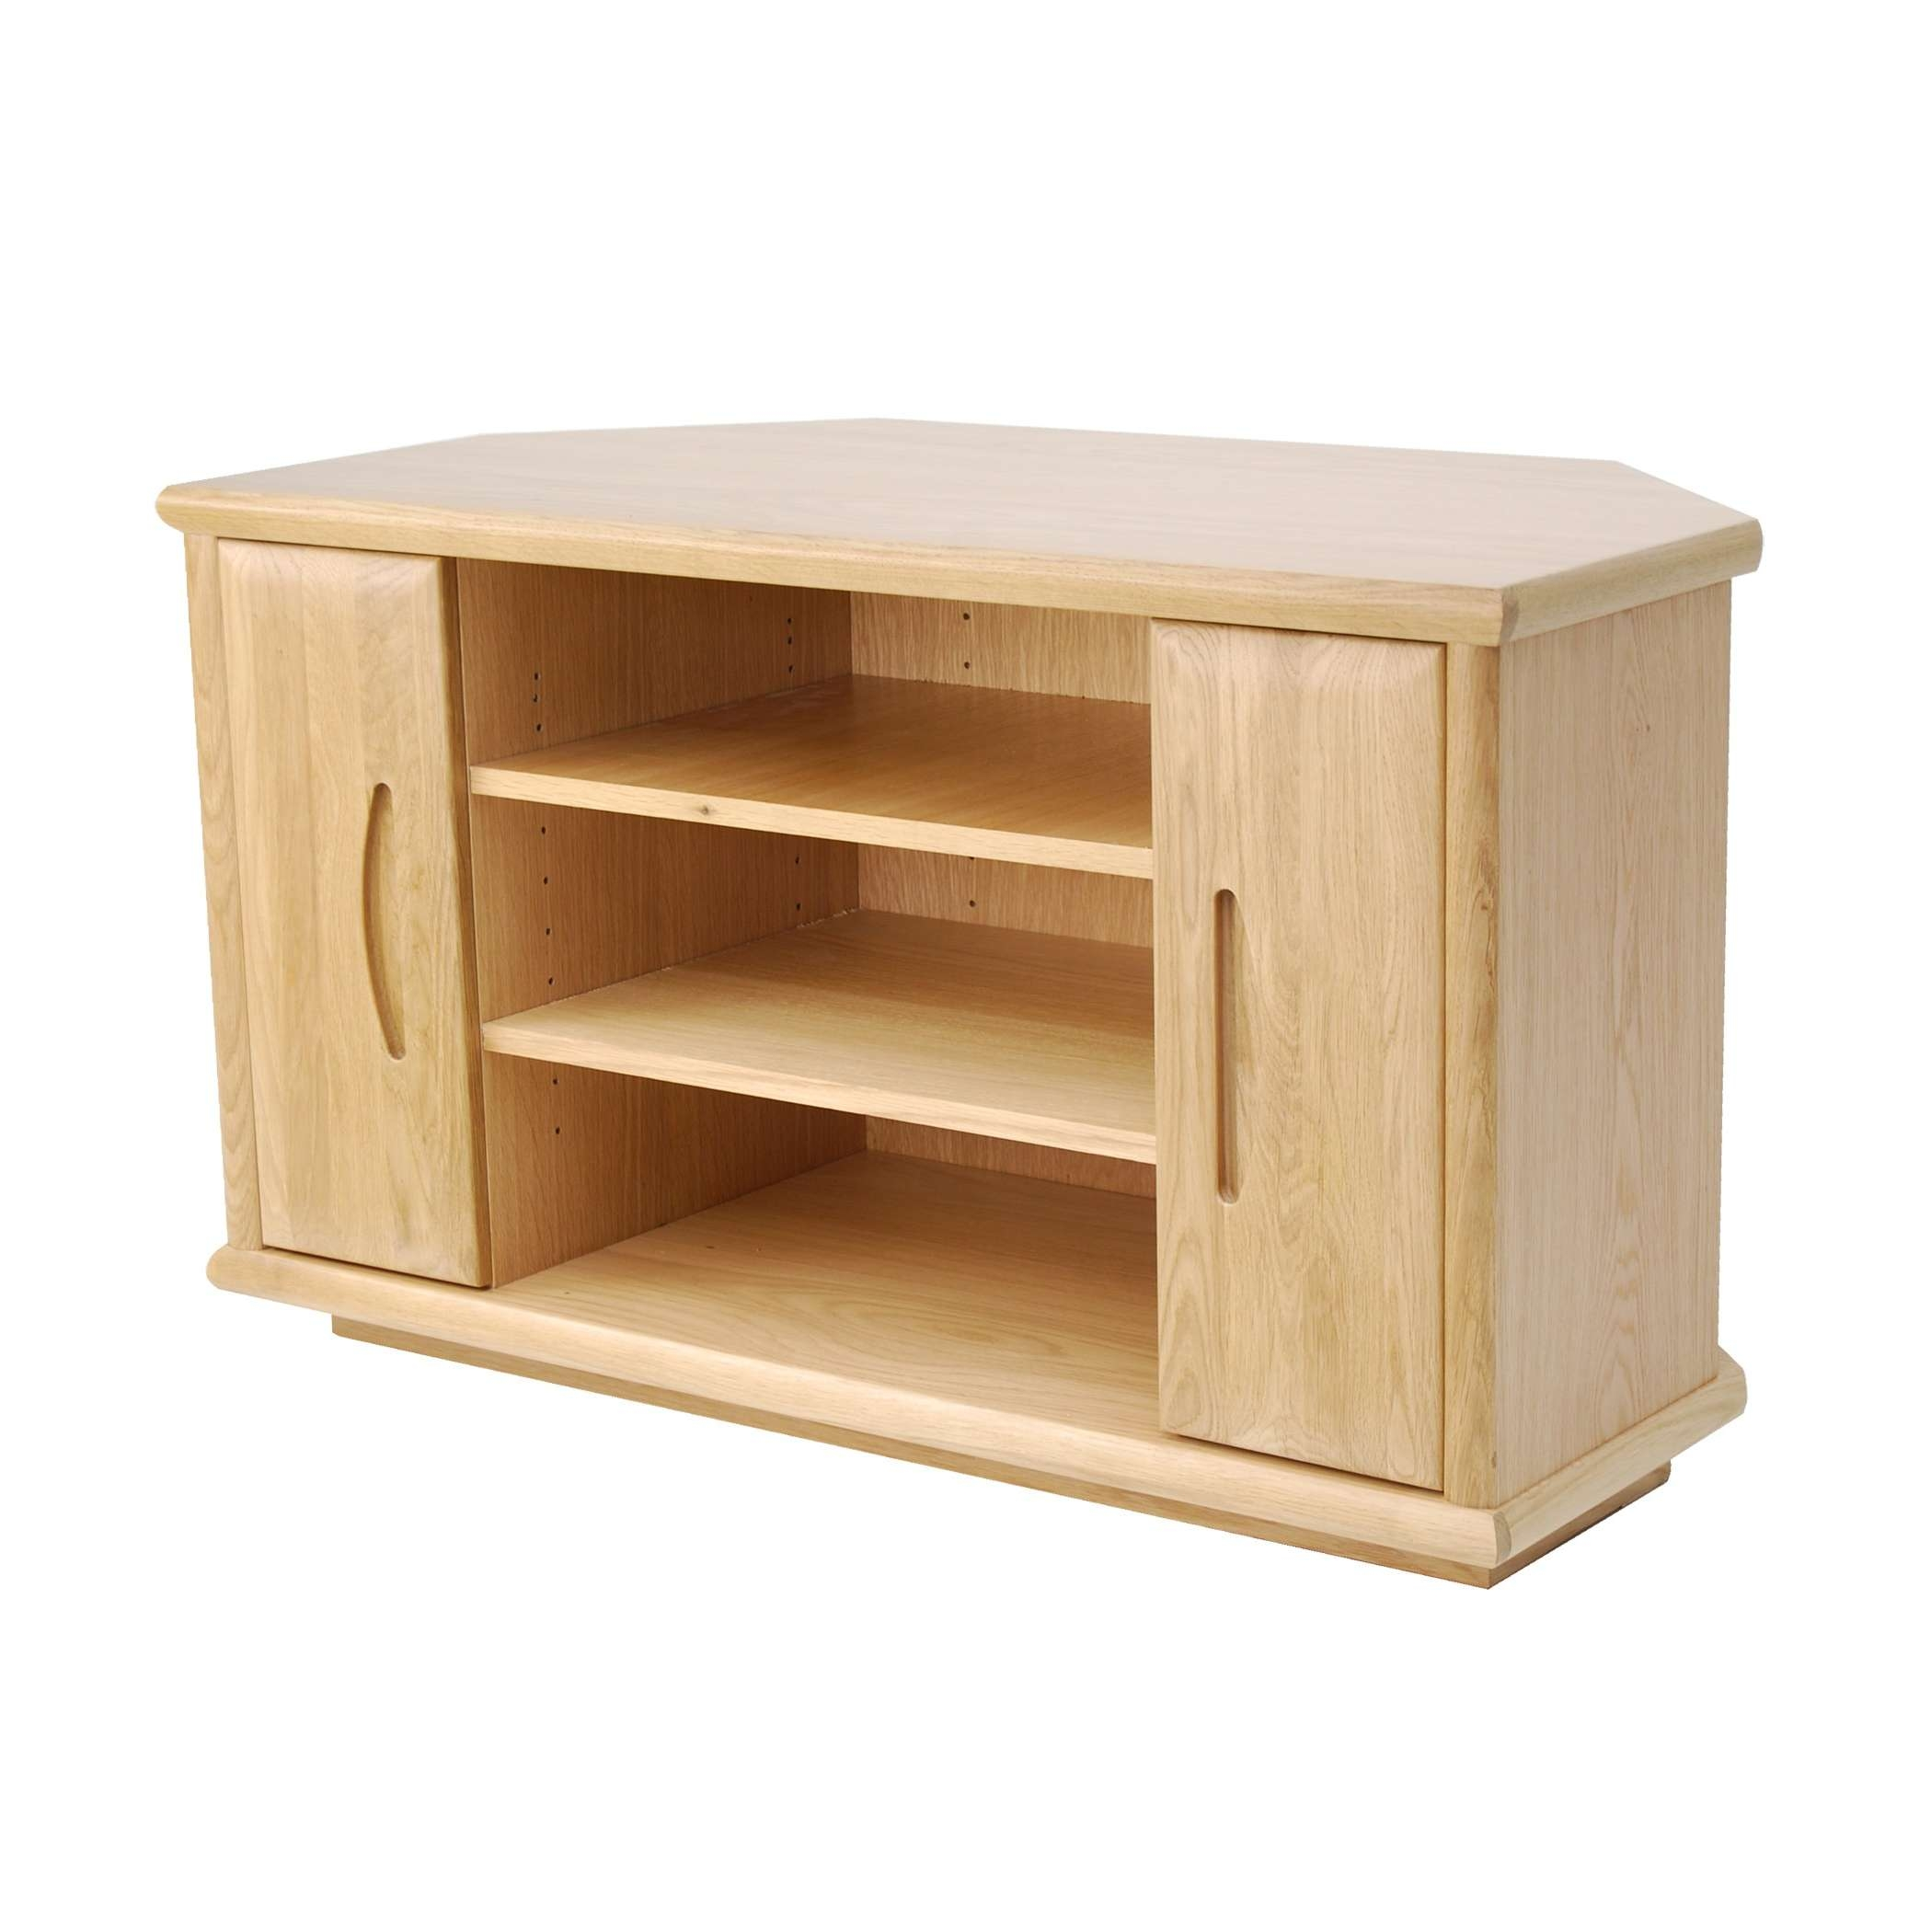 Oak Corner Tv Stand | Gola Furniture Uk With Regard To Corner Wooden Tv Stands (View 7 of 15)